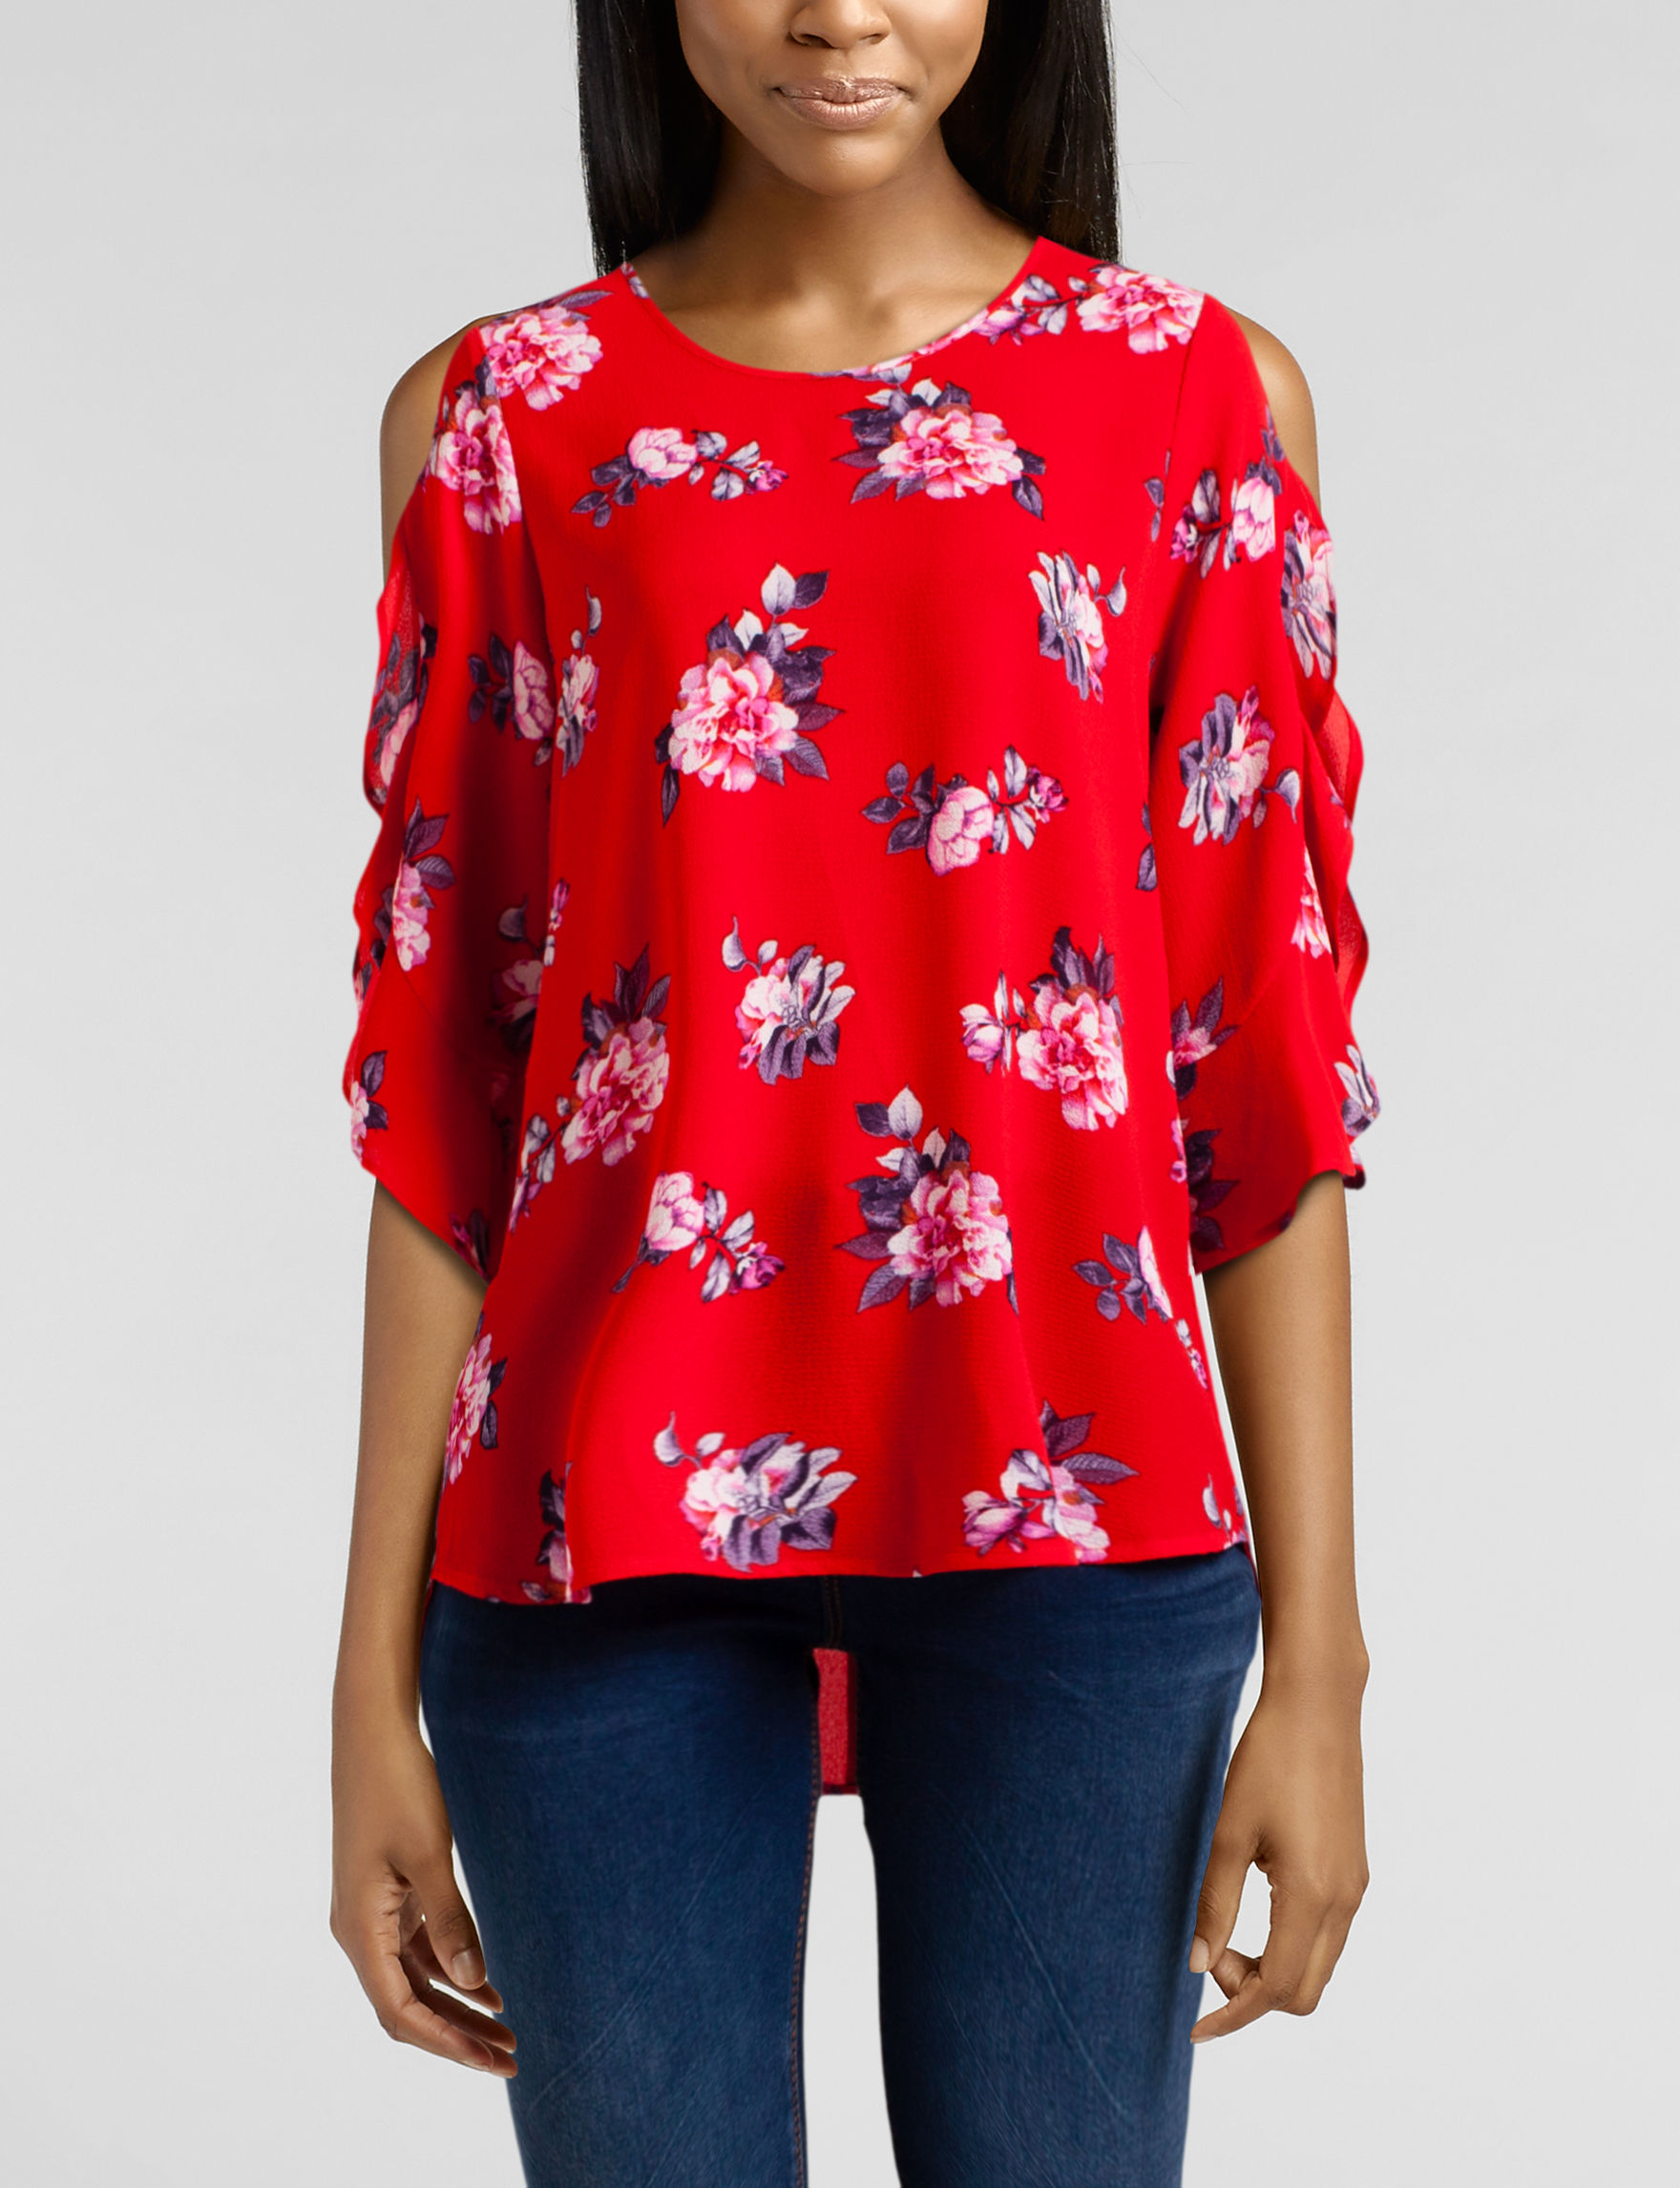 Wishful Park Red Floral Shirts & Blouses